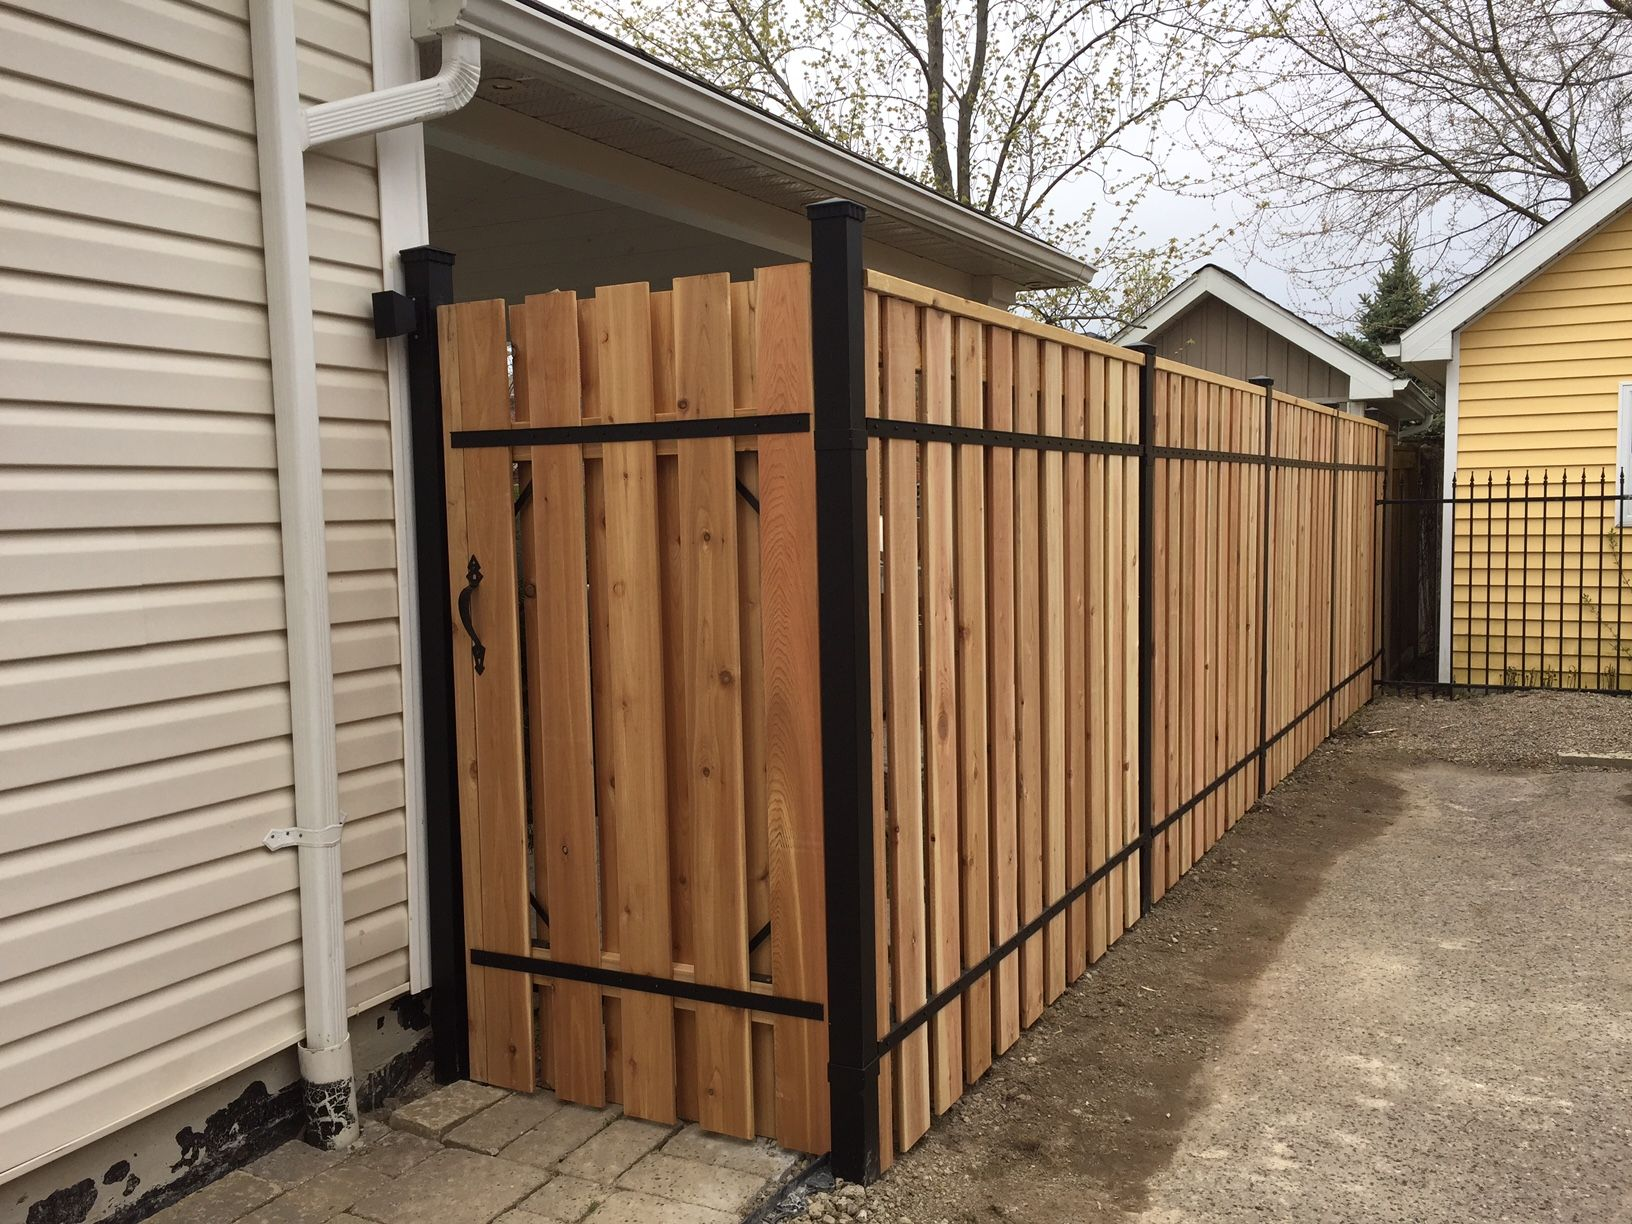 our fences provide ample privacy with the look and feel of a